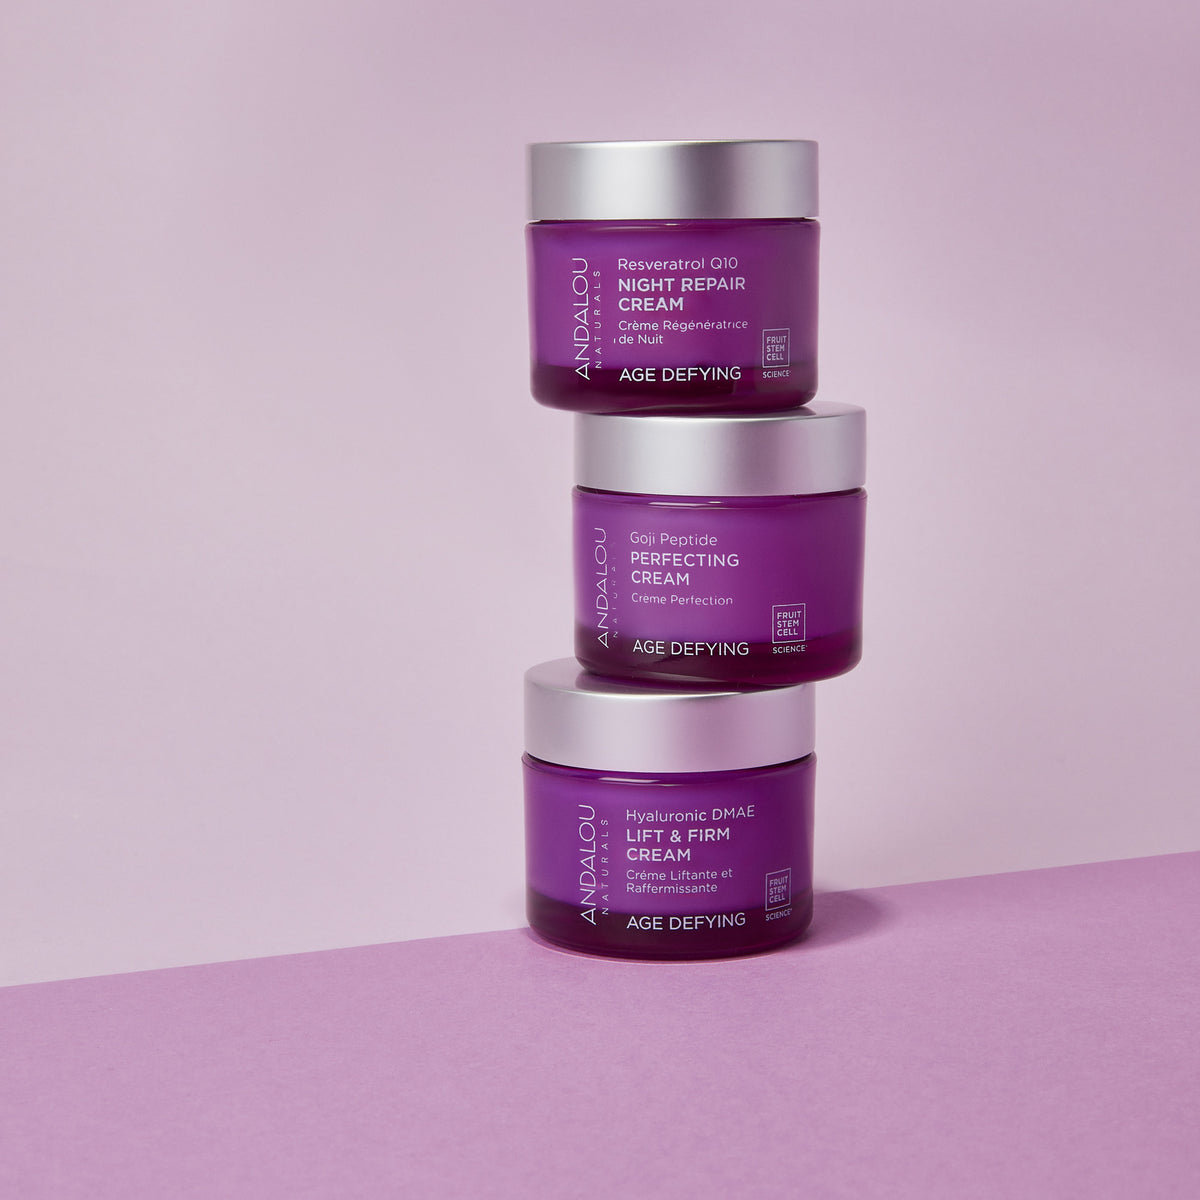 Age Defying Resveratrol Q10 Night Repair Cream jars